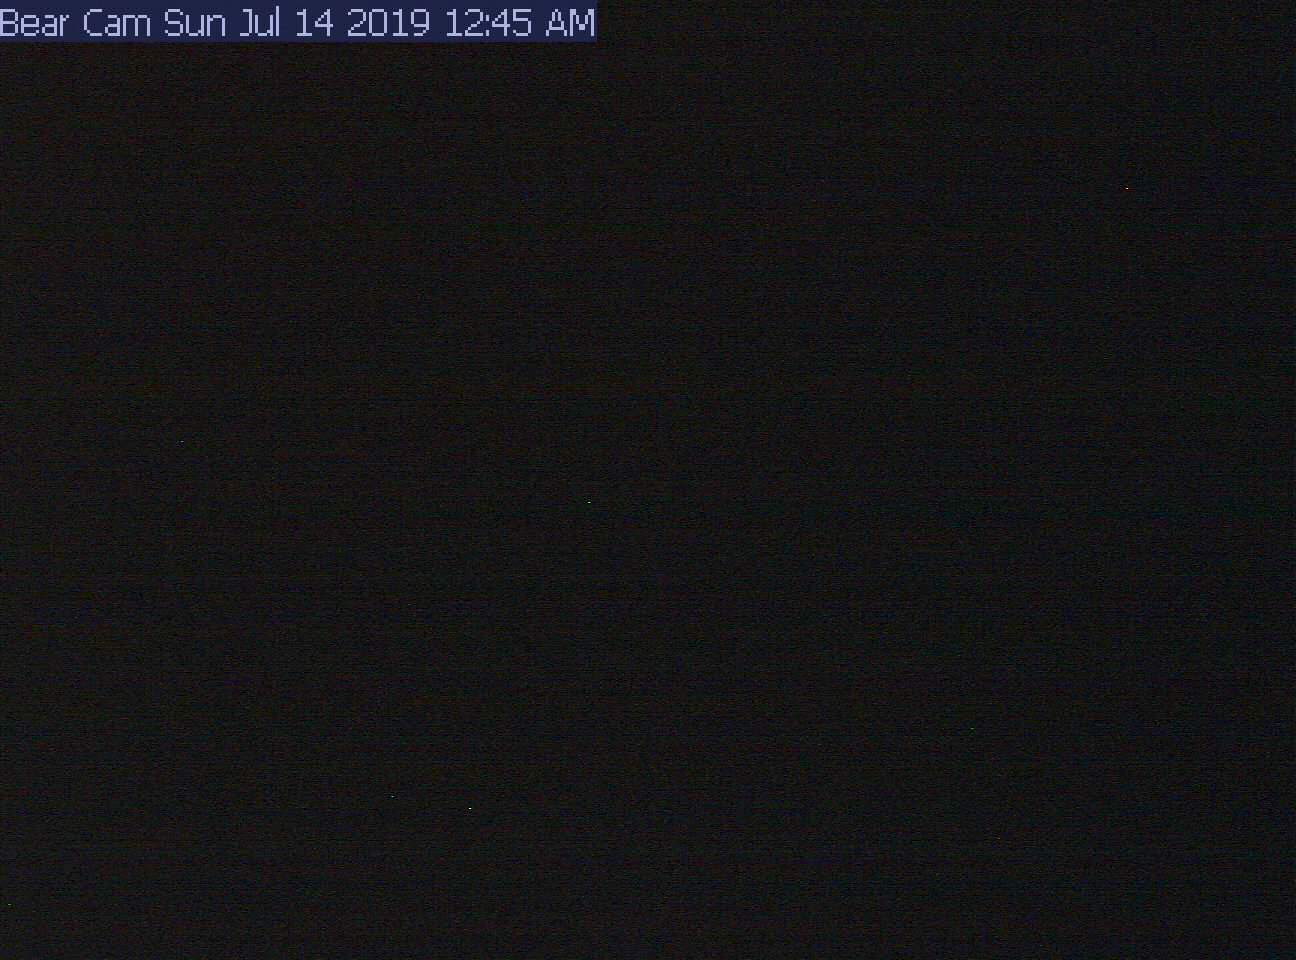 Brundage Mid Mountain Webcam - McCall, ID